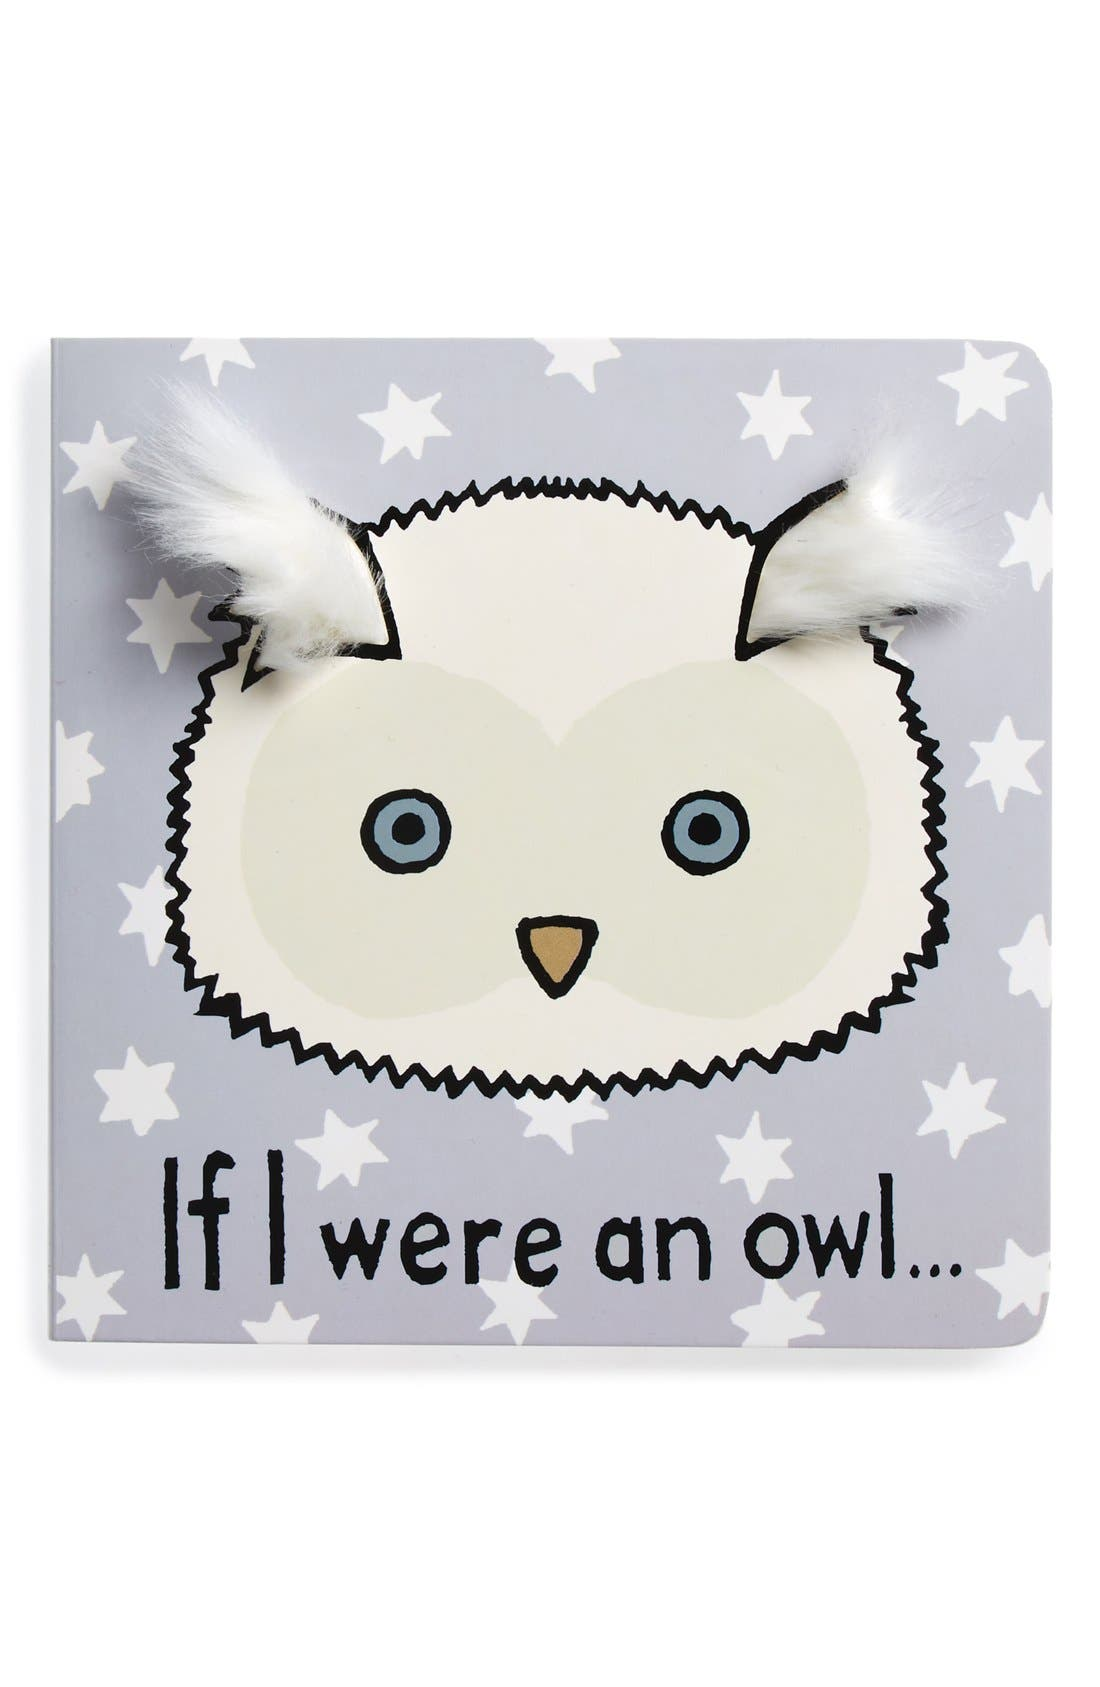 'If I Were an Owl' Board Book,                             Main thumbnail 1, color,                             020